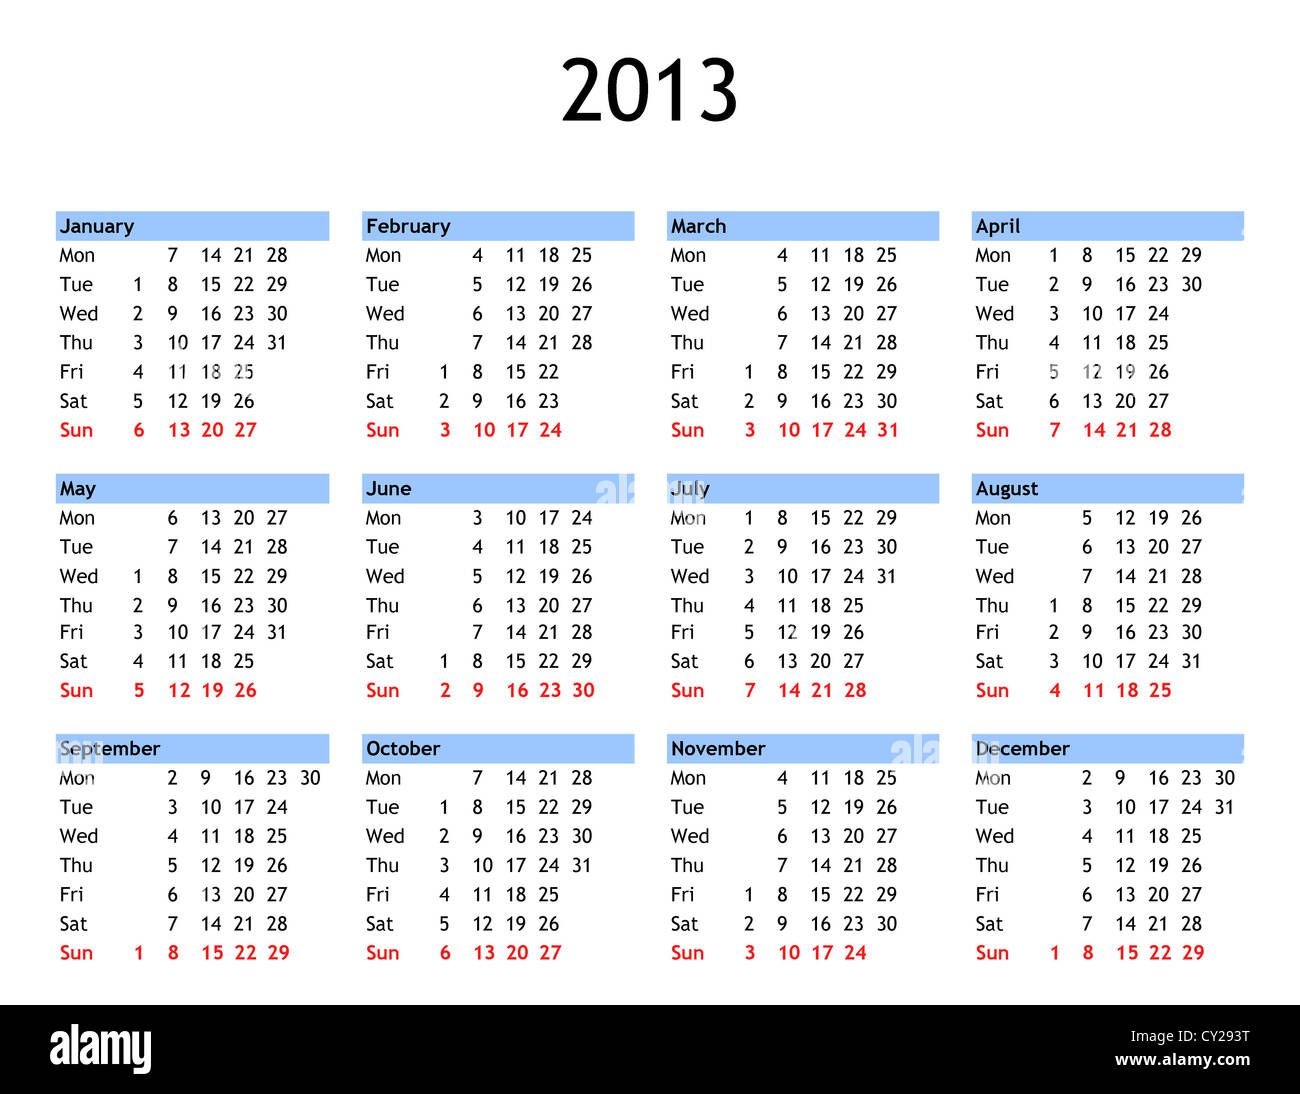 single page year 2013 calendar stock photo 51067516 alamy